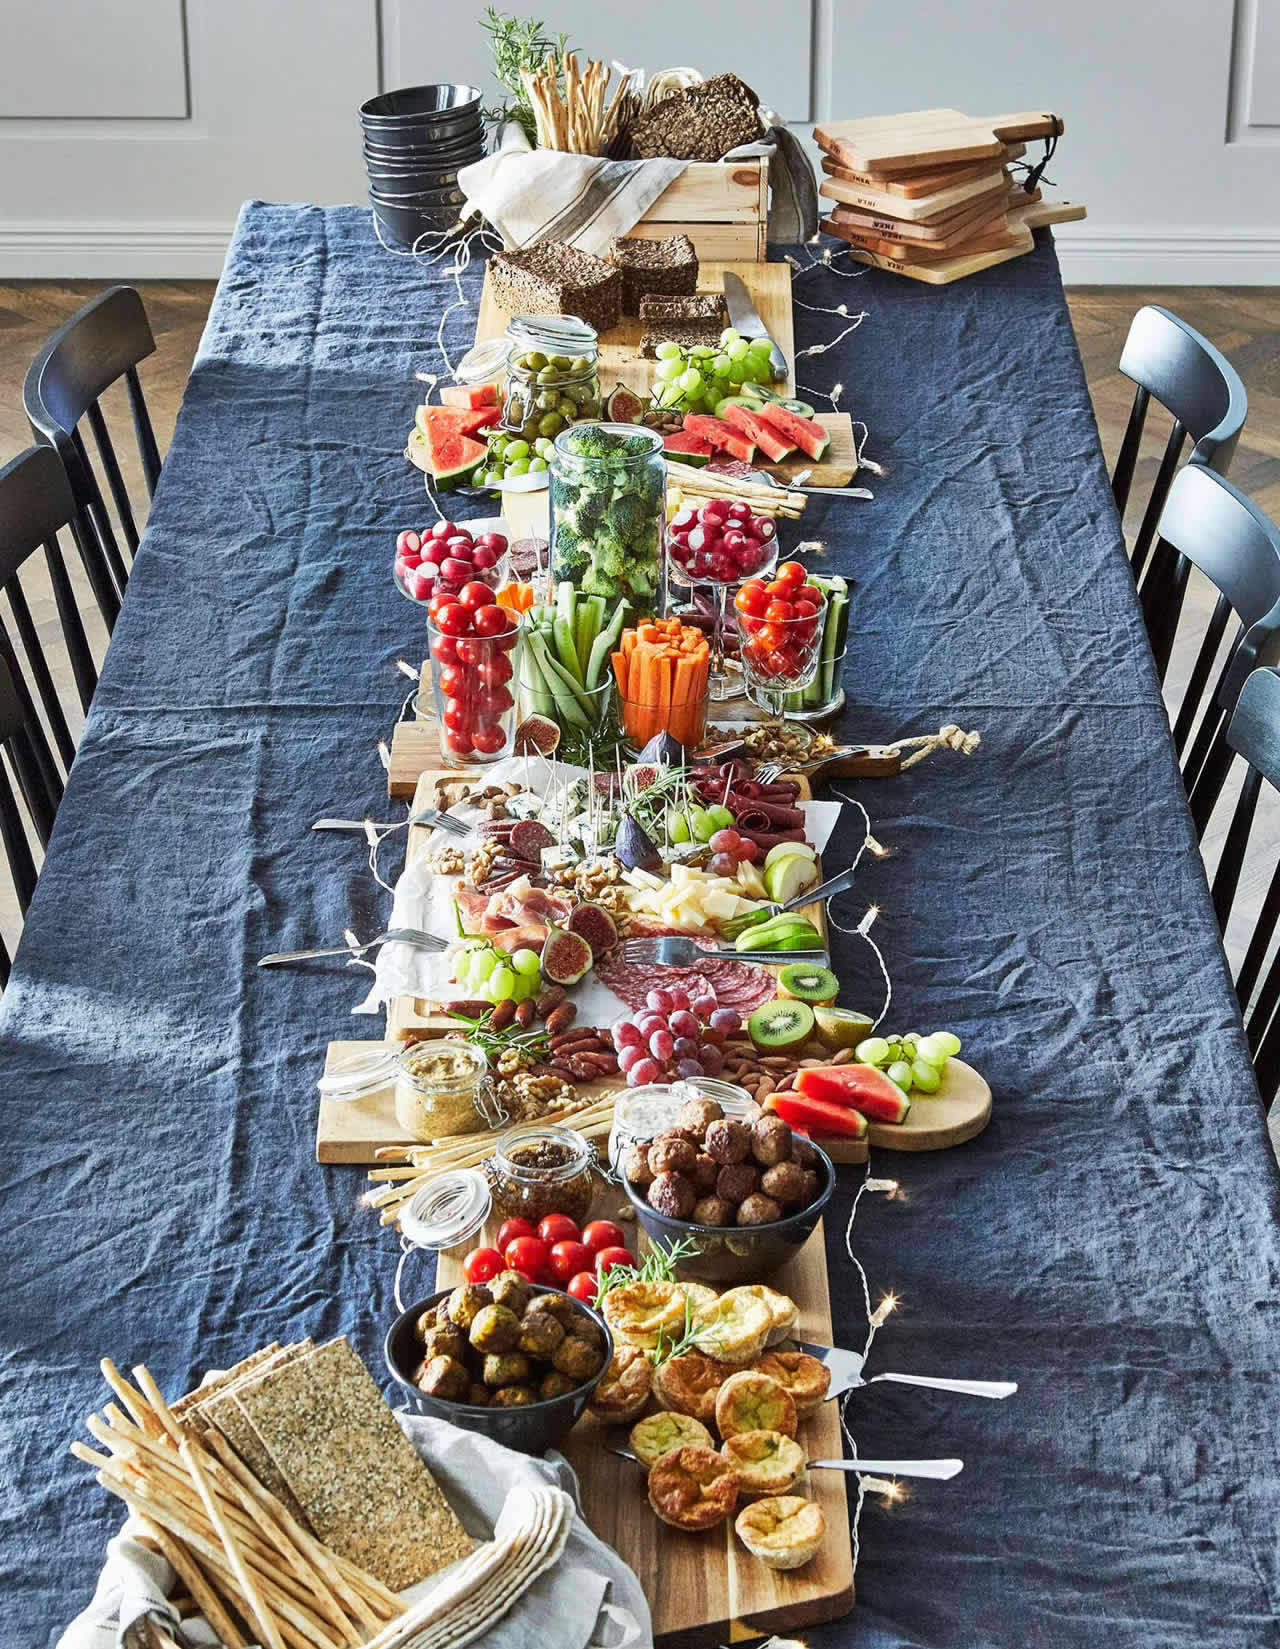 IKEA Ideas - A no-cook dinner party